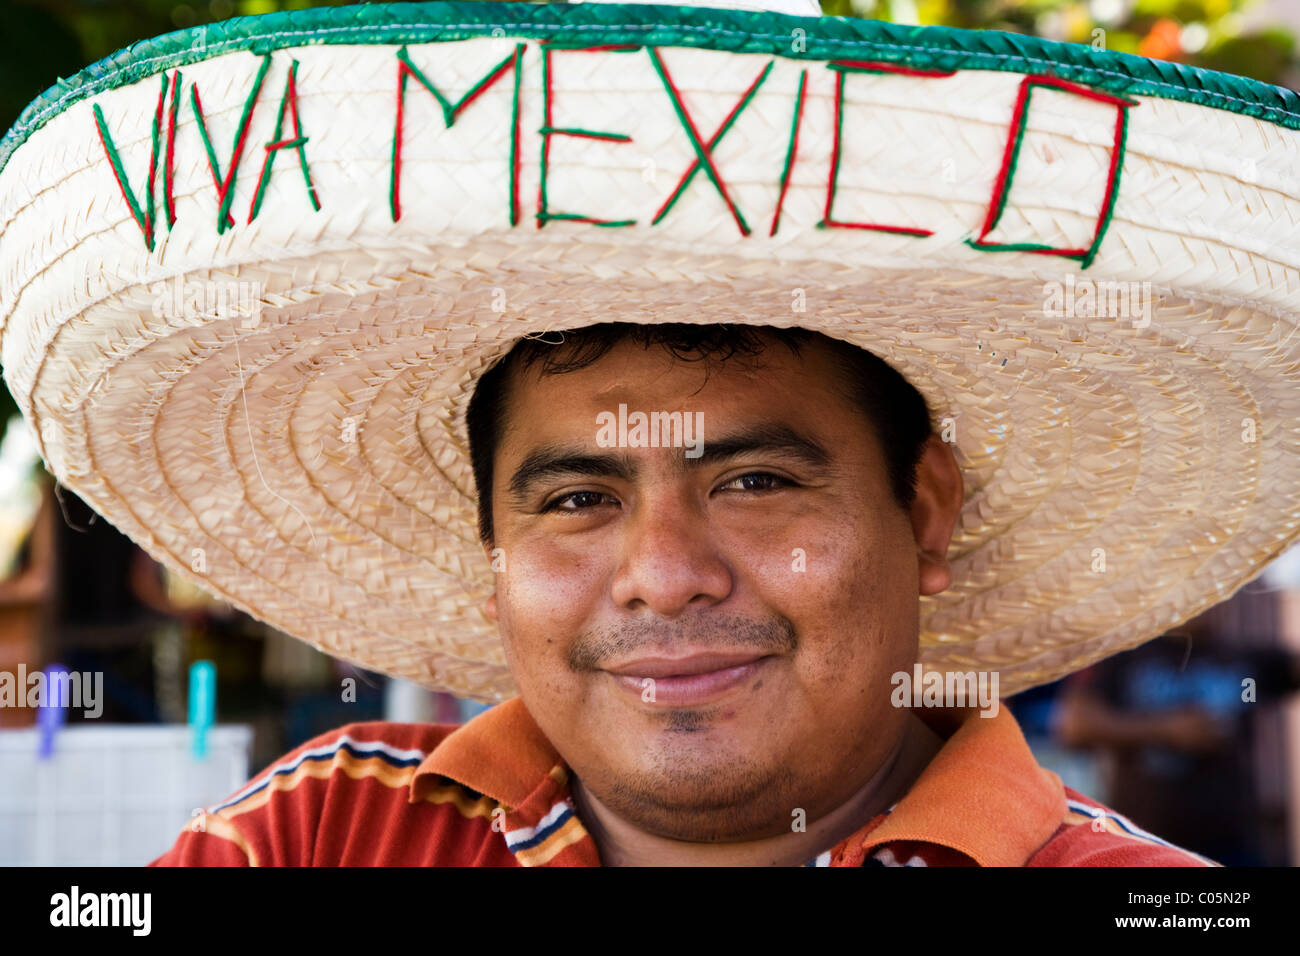 ccc9bc200cb Portrait of Mexican man from Yucatan wearing a sombrero with Viva Mexico on  it